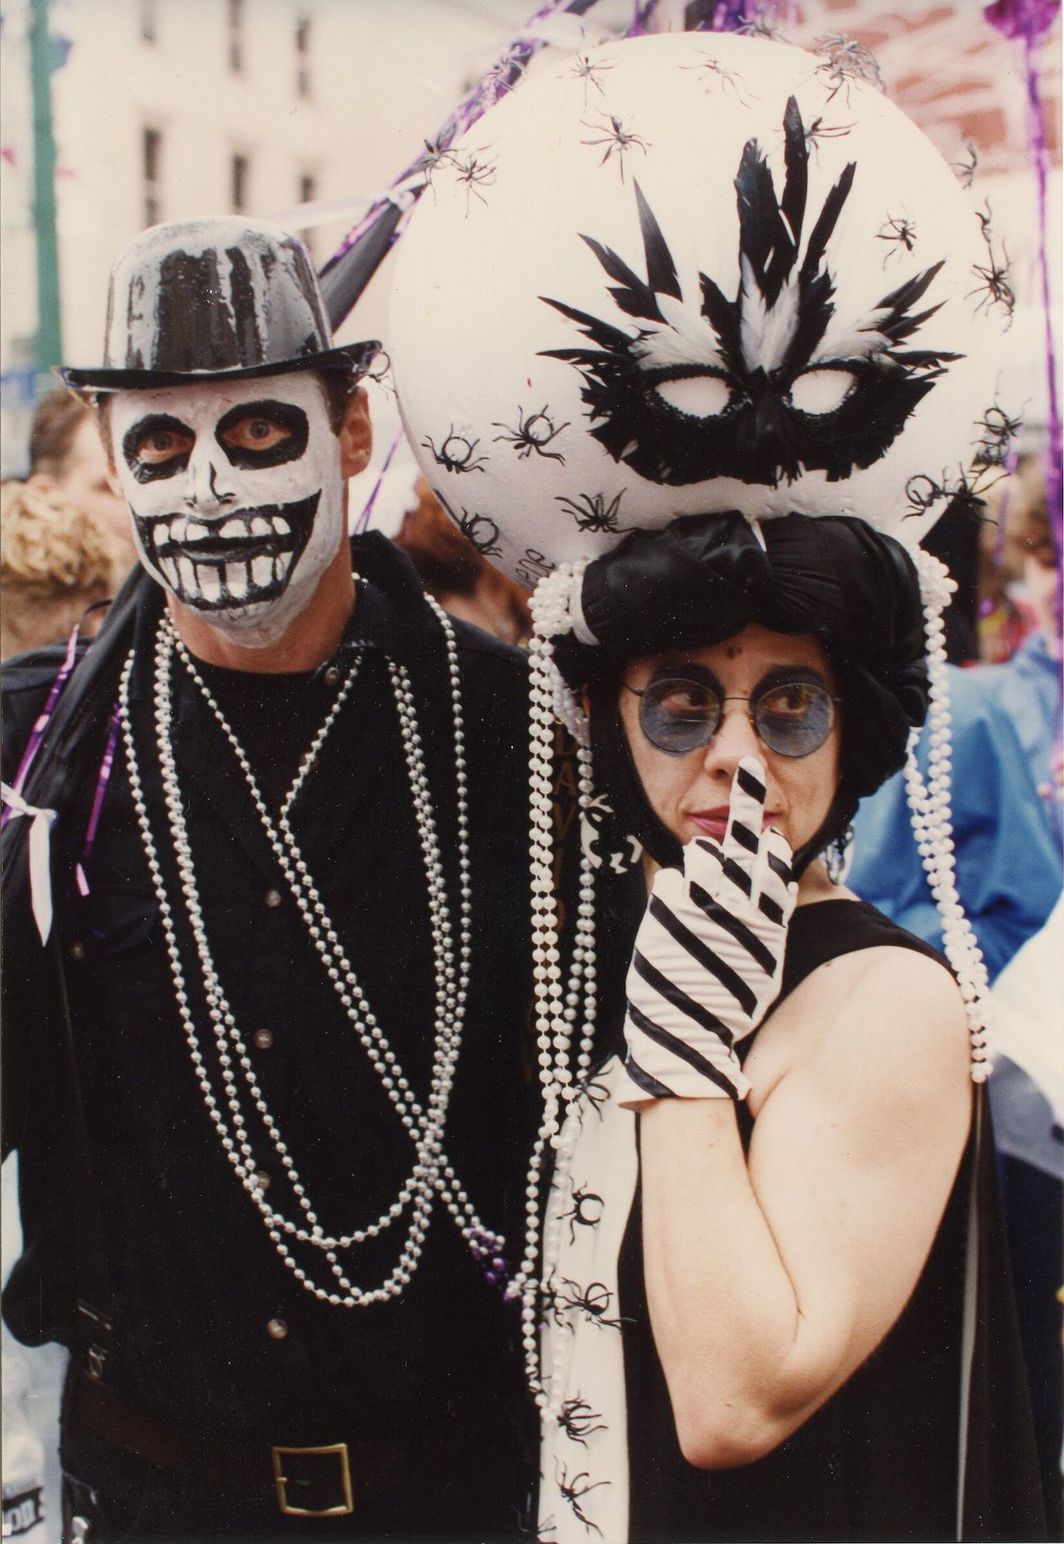 David Bradshaw and Tina Girouard in Mardi Gras parade in New Orleans, c. 1995. Photo: Robert Fiore.